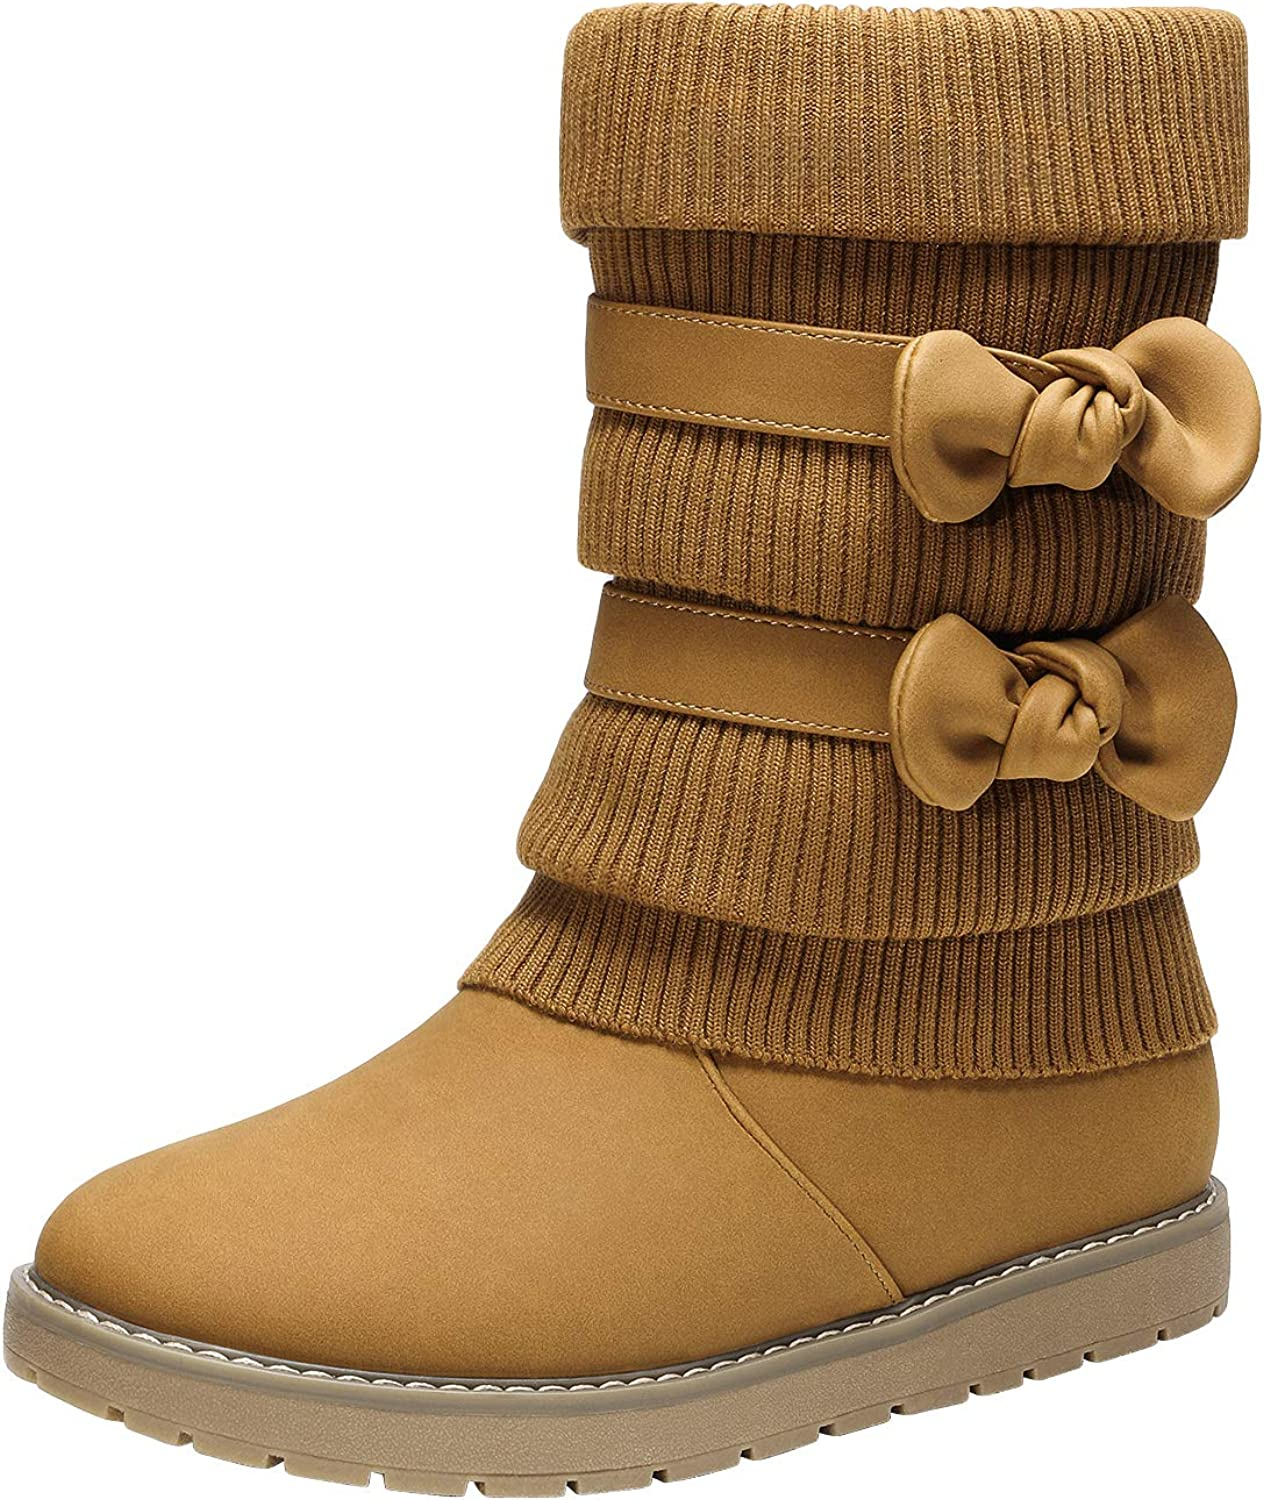 Max 46% OFF DREAM PAIRS Girl's Winter Snow Boots Mid Fur Lined Calf Max 85% OFF Faux Sho